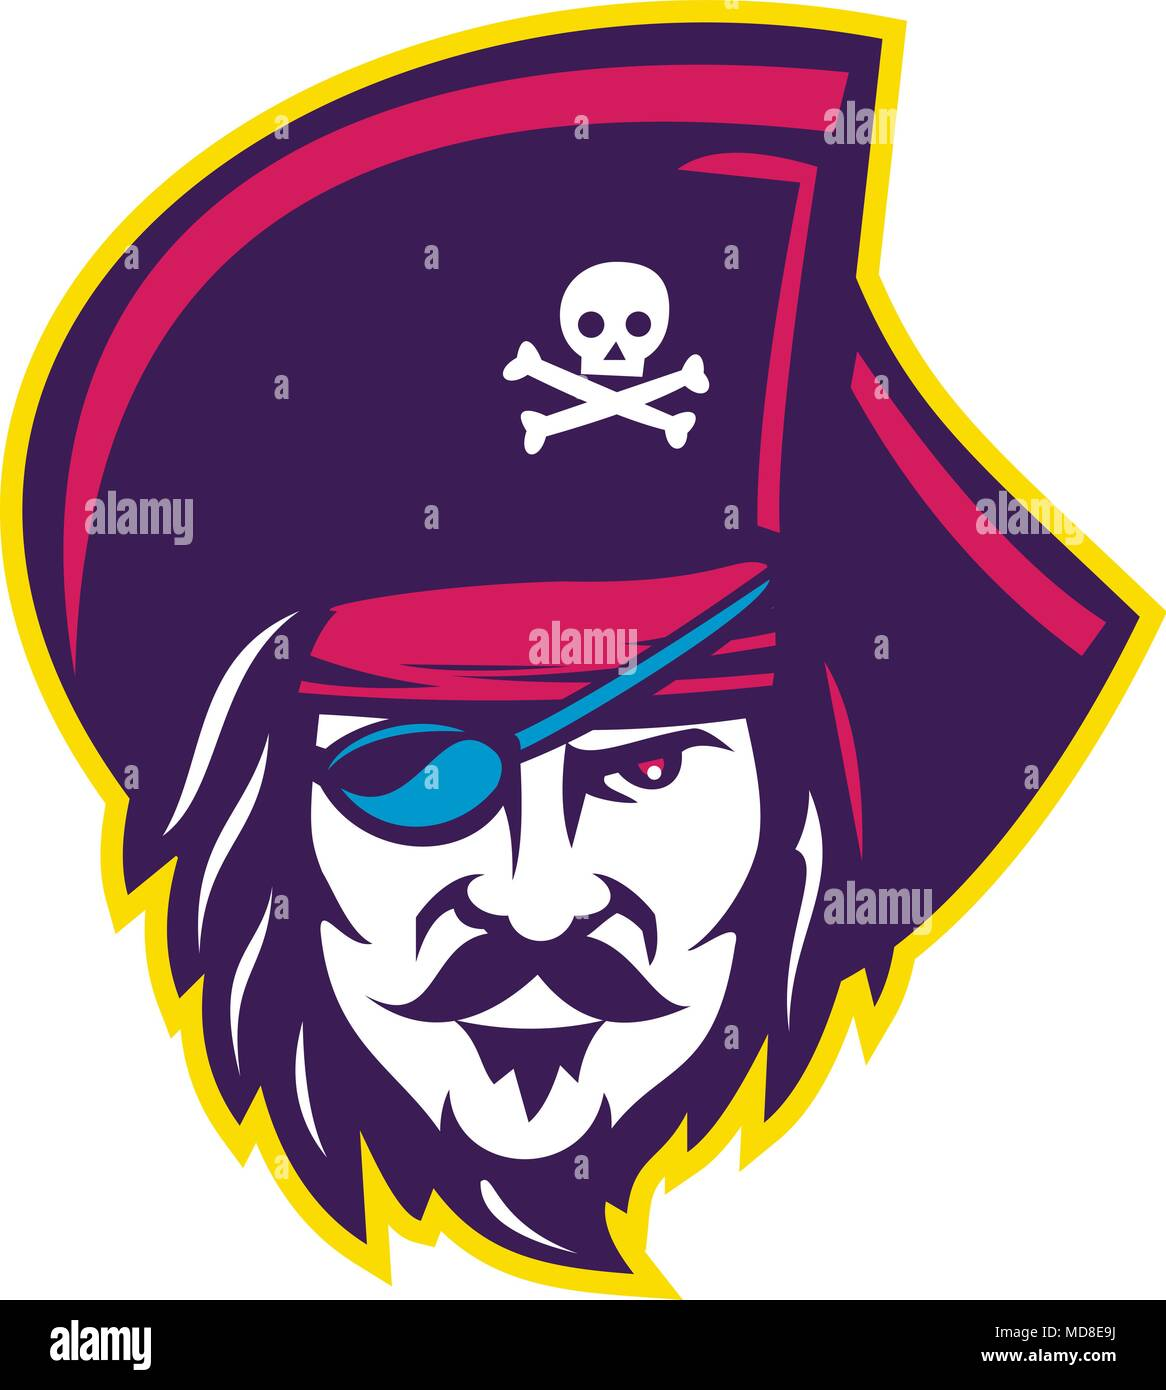 Mascot icon illustration of head of a privateer, corsair or pirate wearing a cocked or tricorne  tricon hat with eye patch viewed from front on isolat - Stock Image